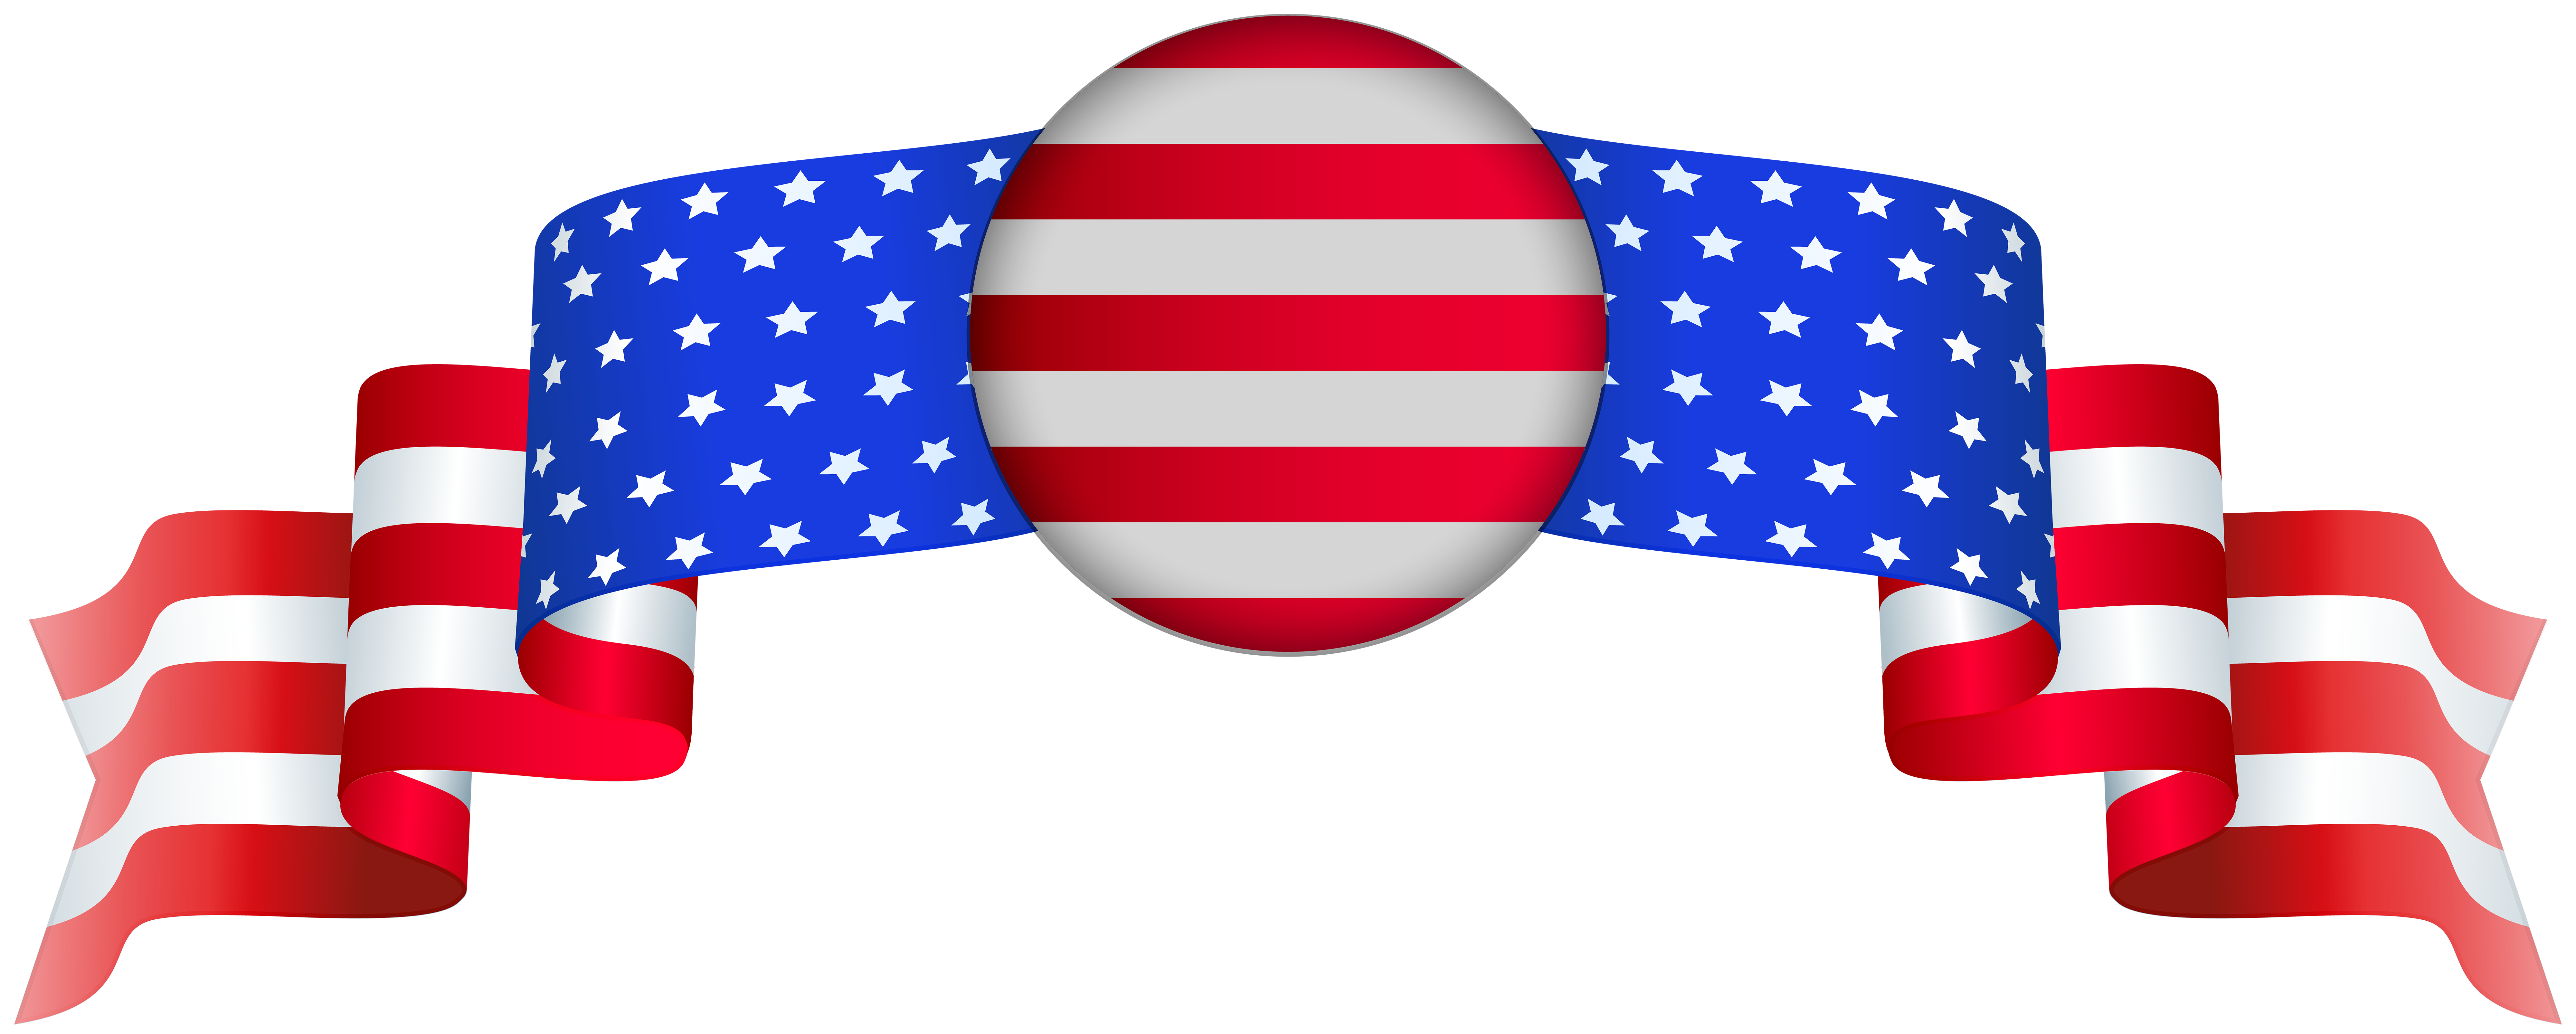 Clipart of the united states graphic library download USA Banner PNG Clip Art Image | Gallery Yopriceville - High-Quality ... graphic library download